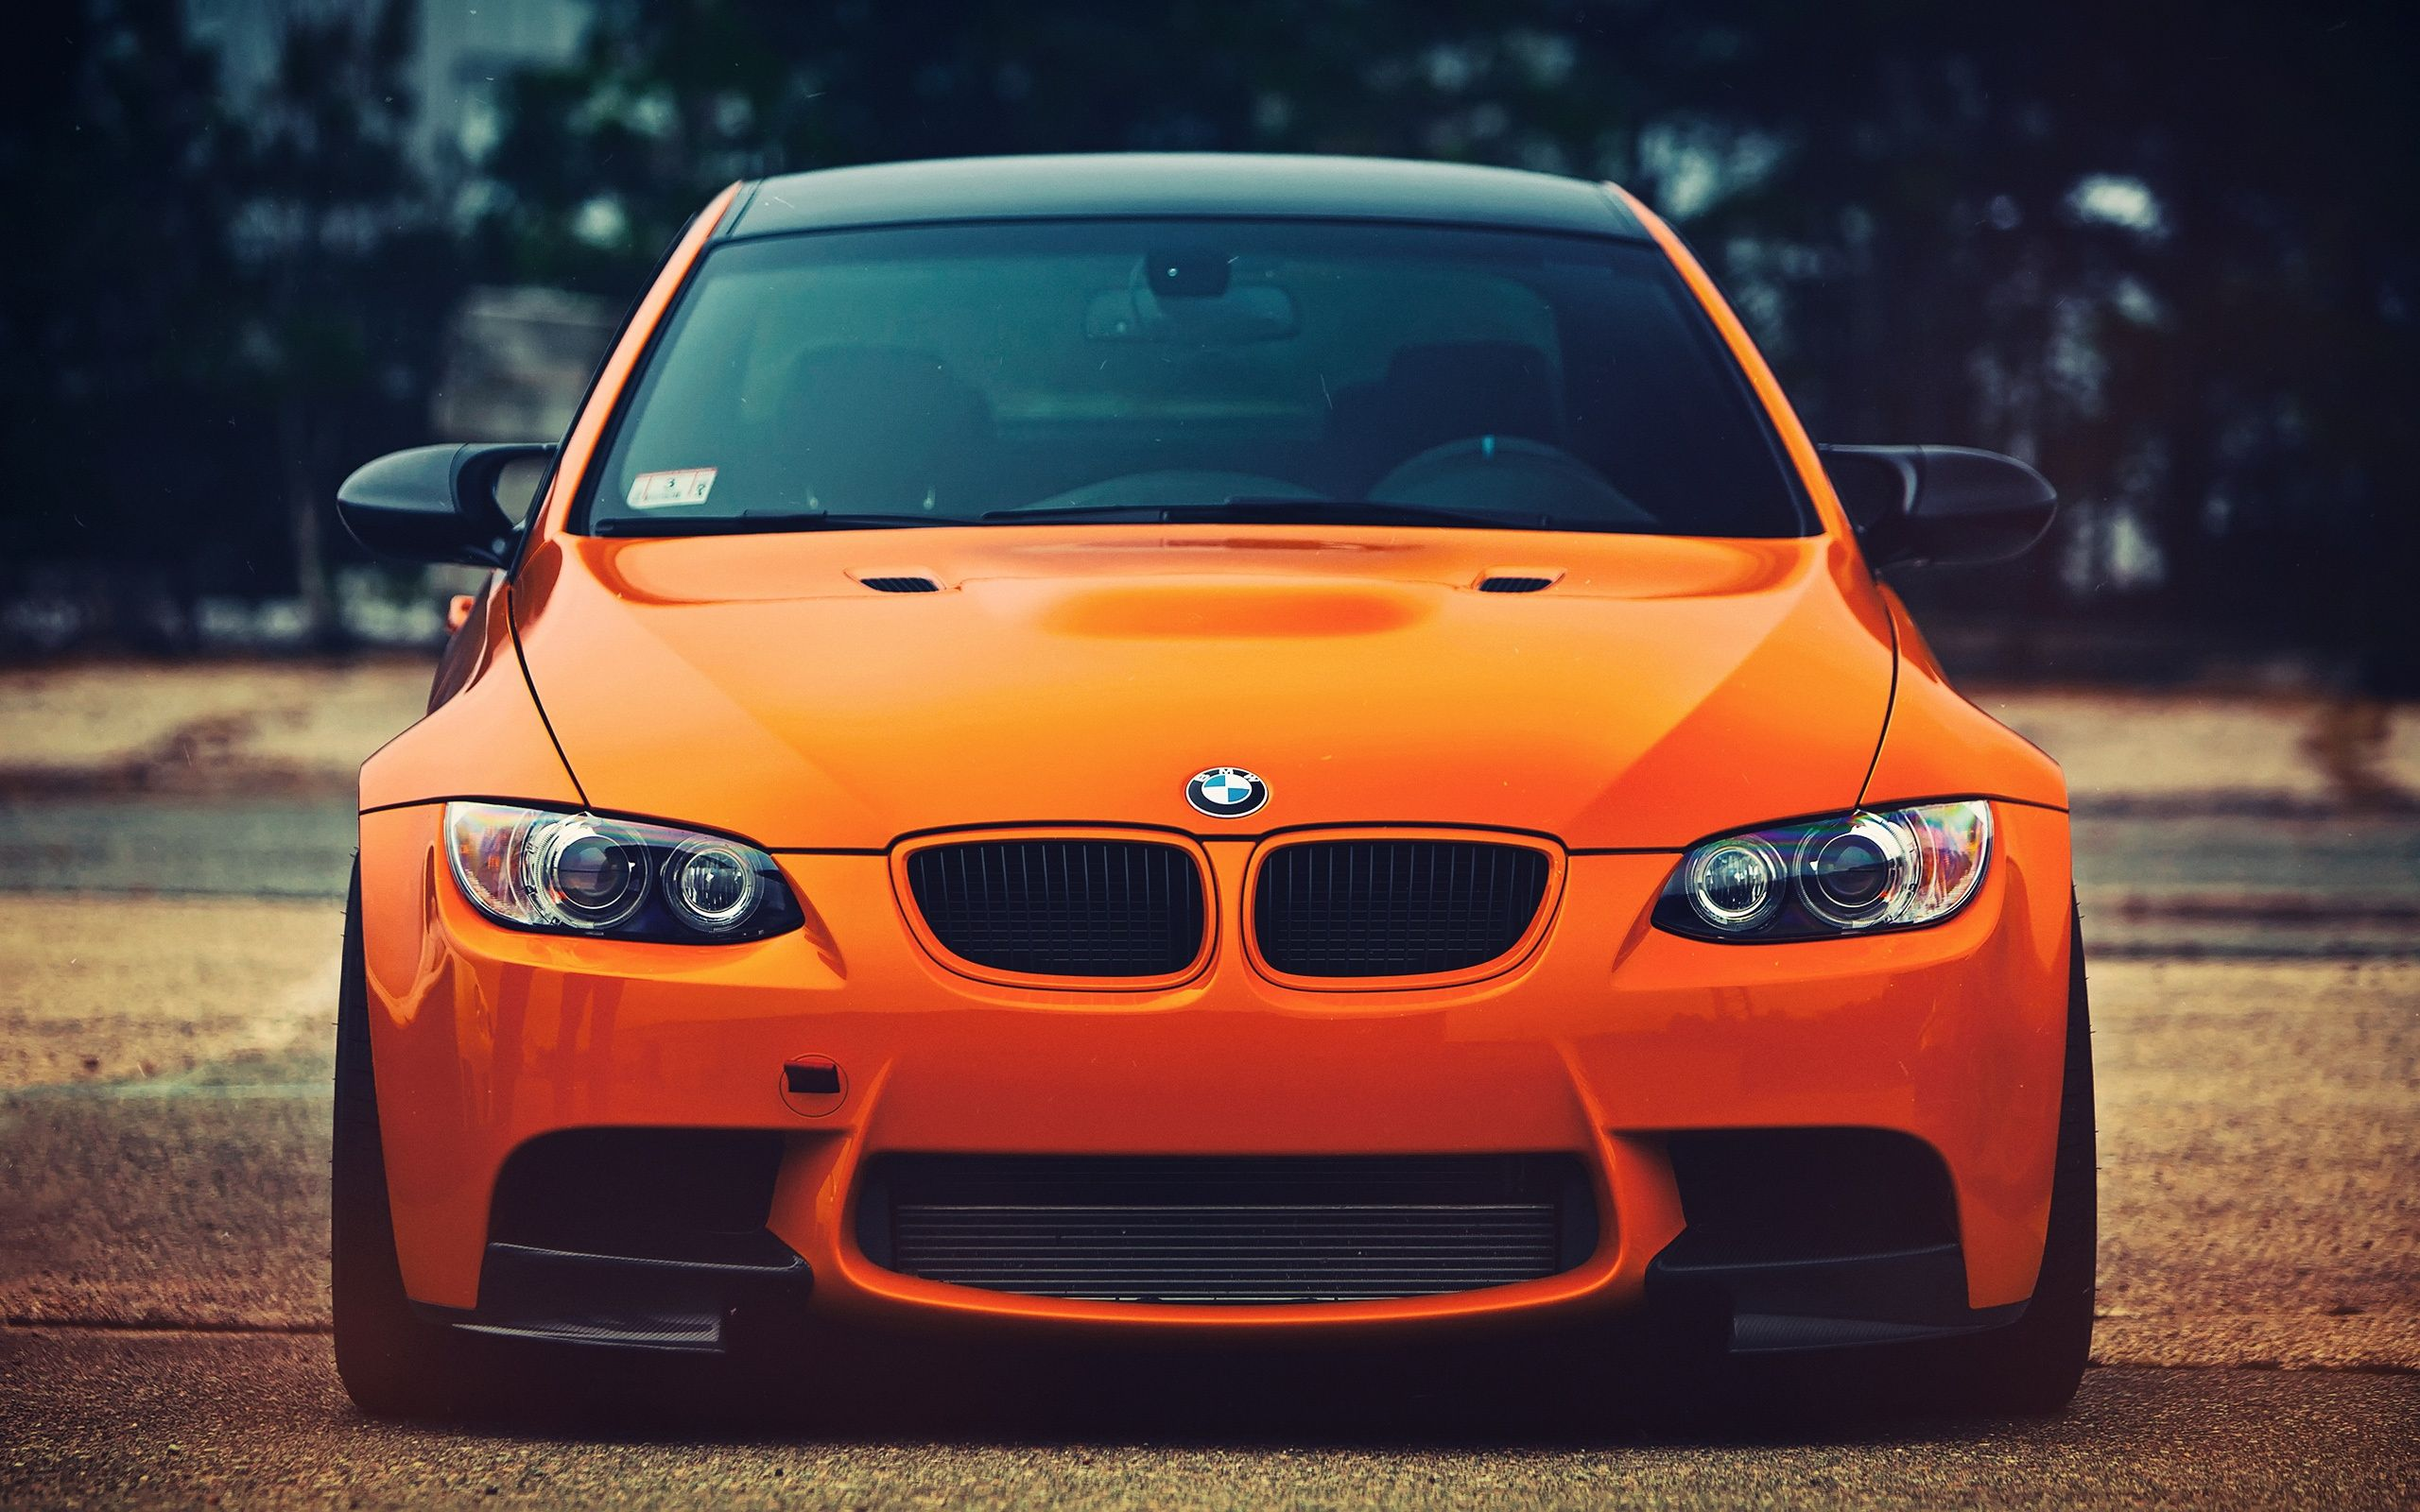 bmw m3 orange car front view wallpapers | hd desktop wallpaper